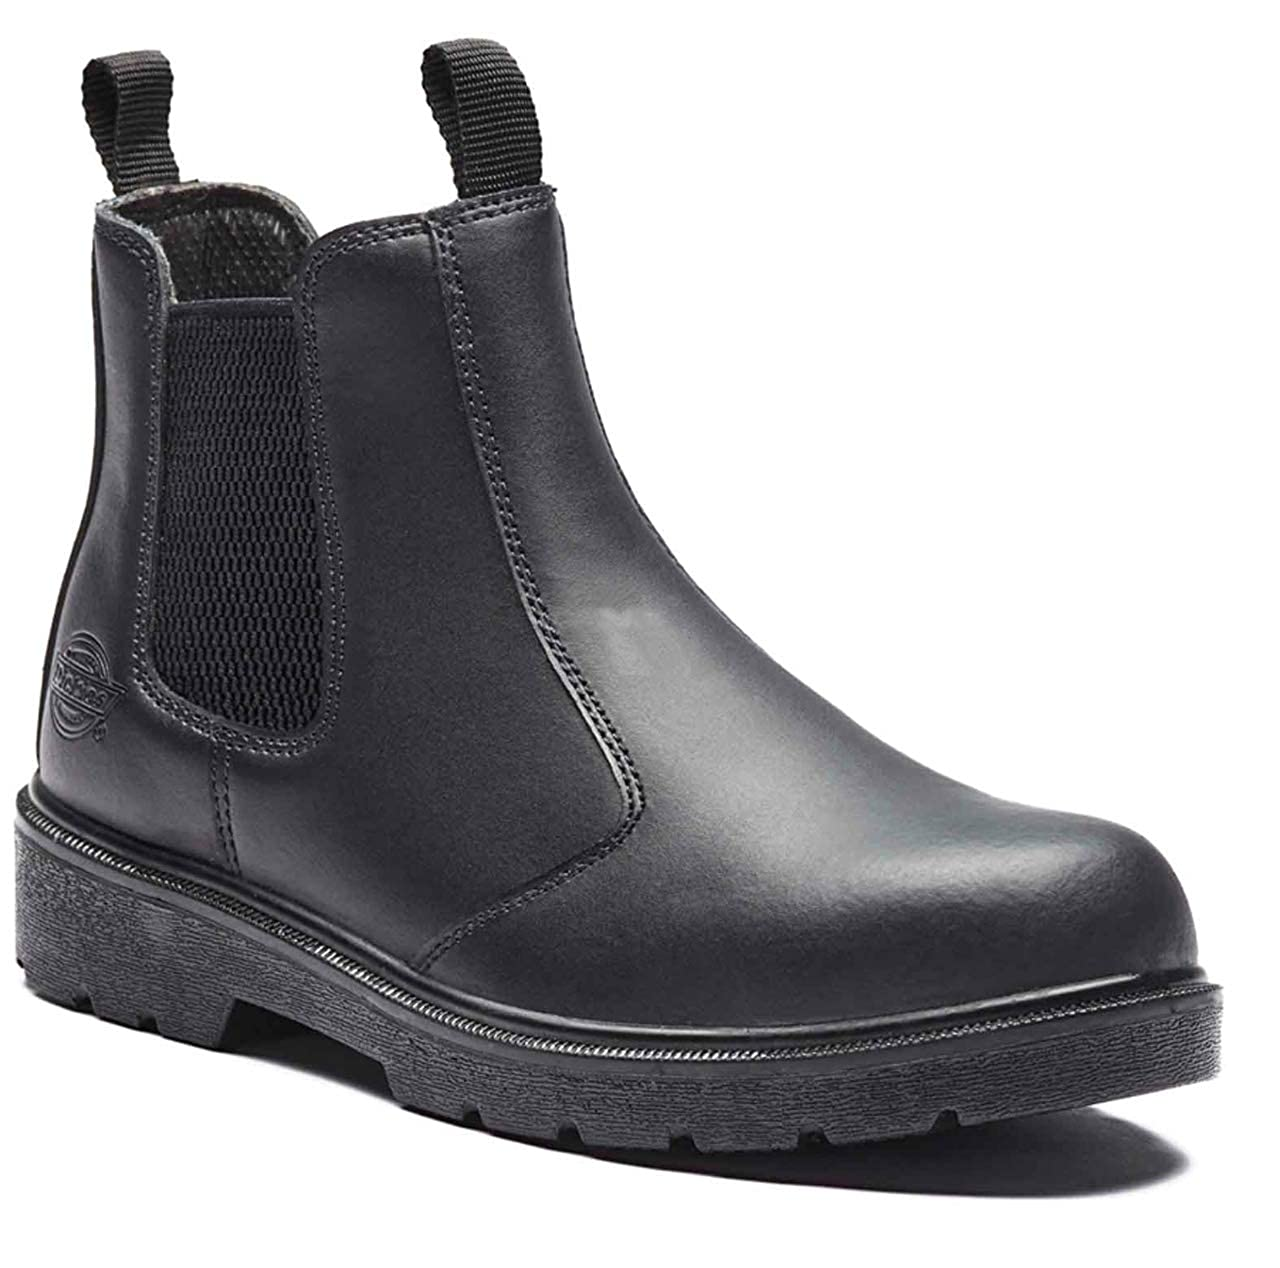 f115f72e26a3 Mens Dickies Slip ON Dealer Chelsea Work Safety Shoes Boots Steel Toe Cap  Size  Amazon.co.uk  Shoes   Bags